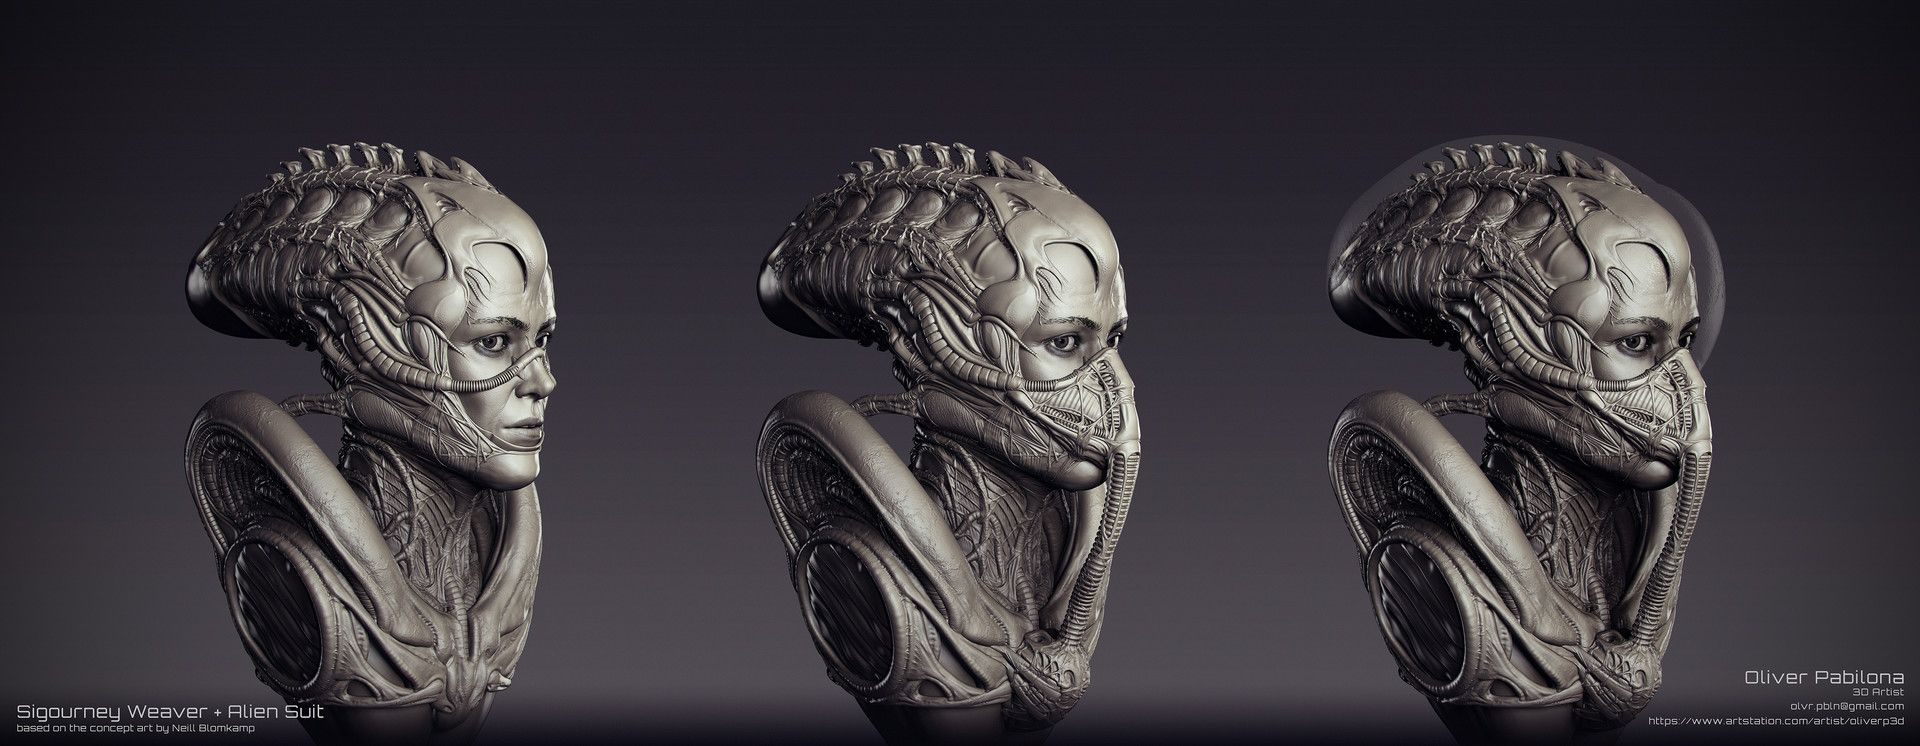 artstation sigourney weaver alien suit sculpt